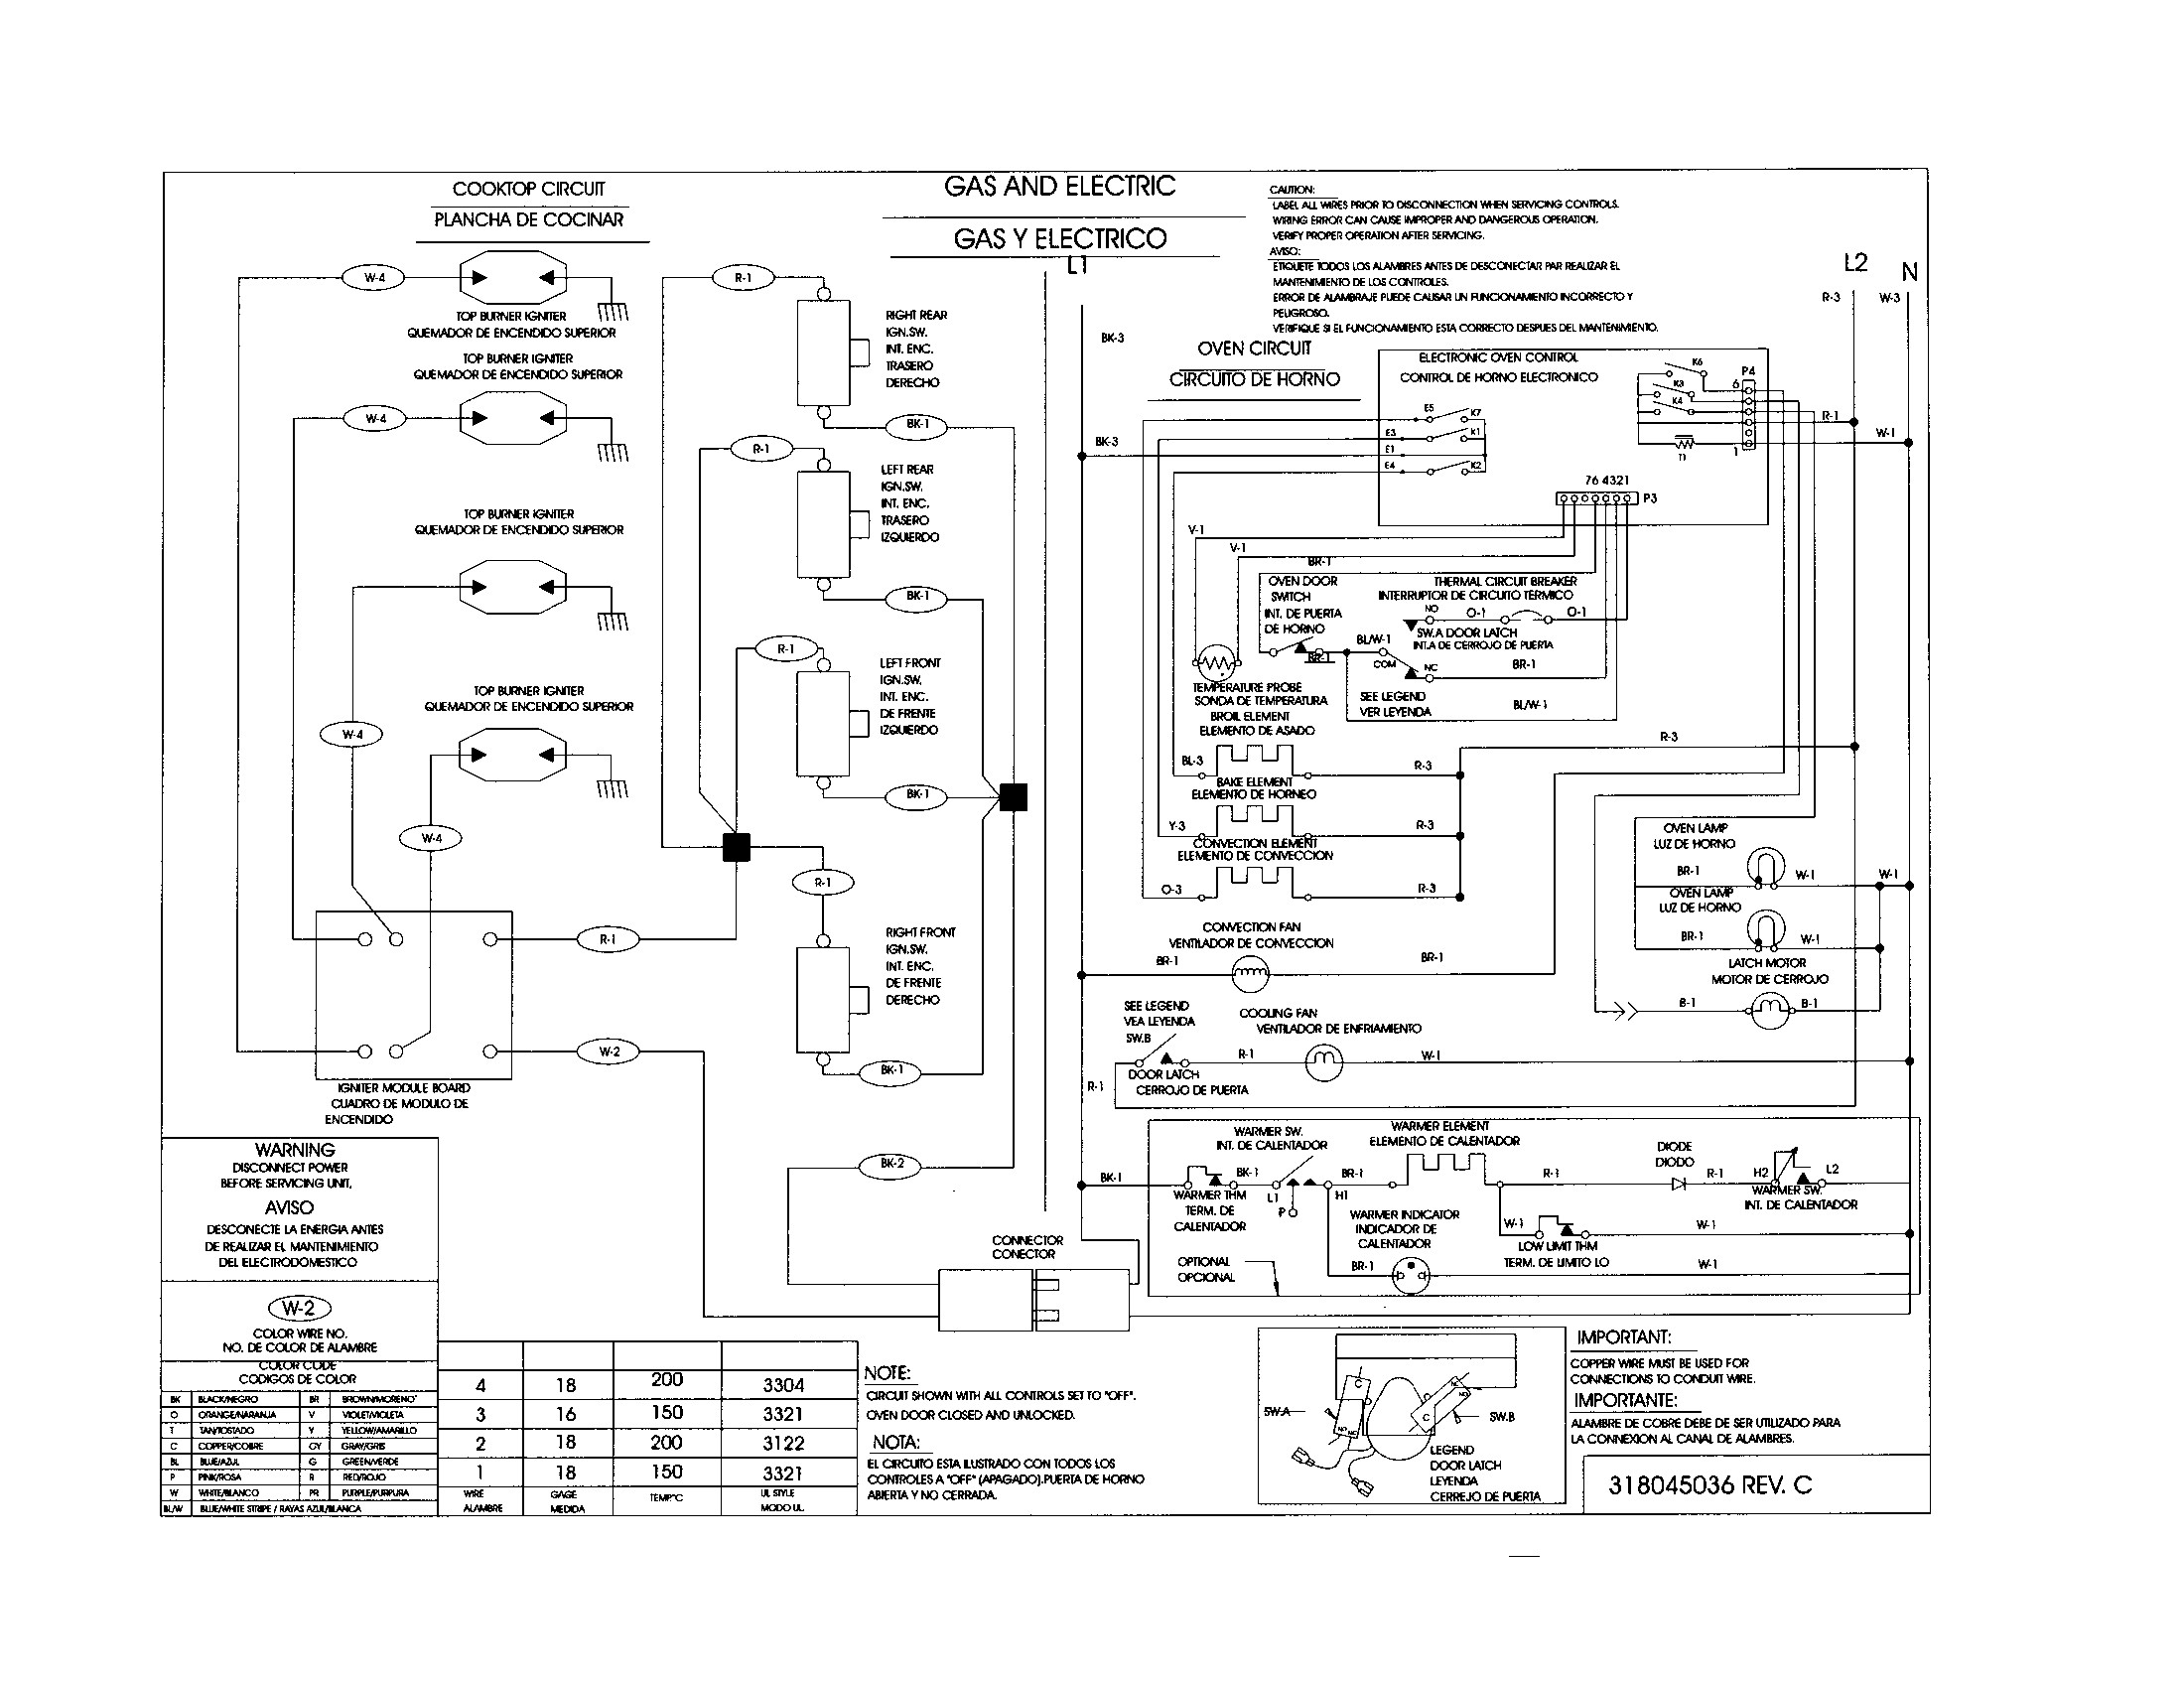 honda 1989 model 110 wiring diagram kenmore model 110 wiring diagram